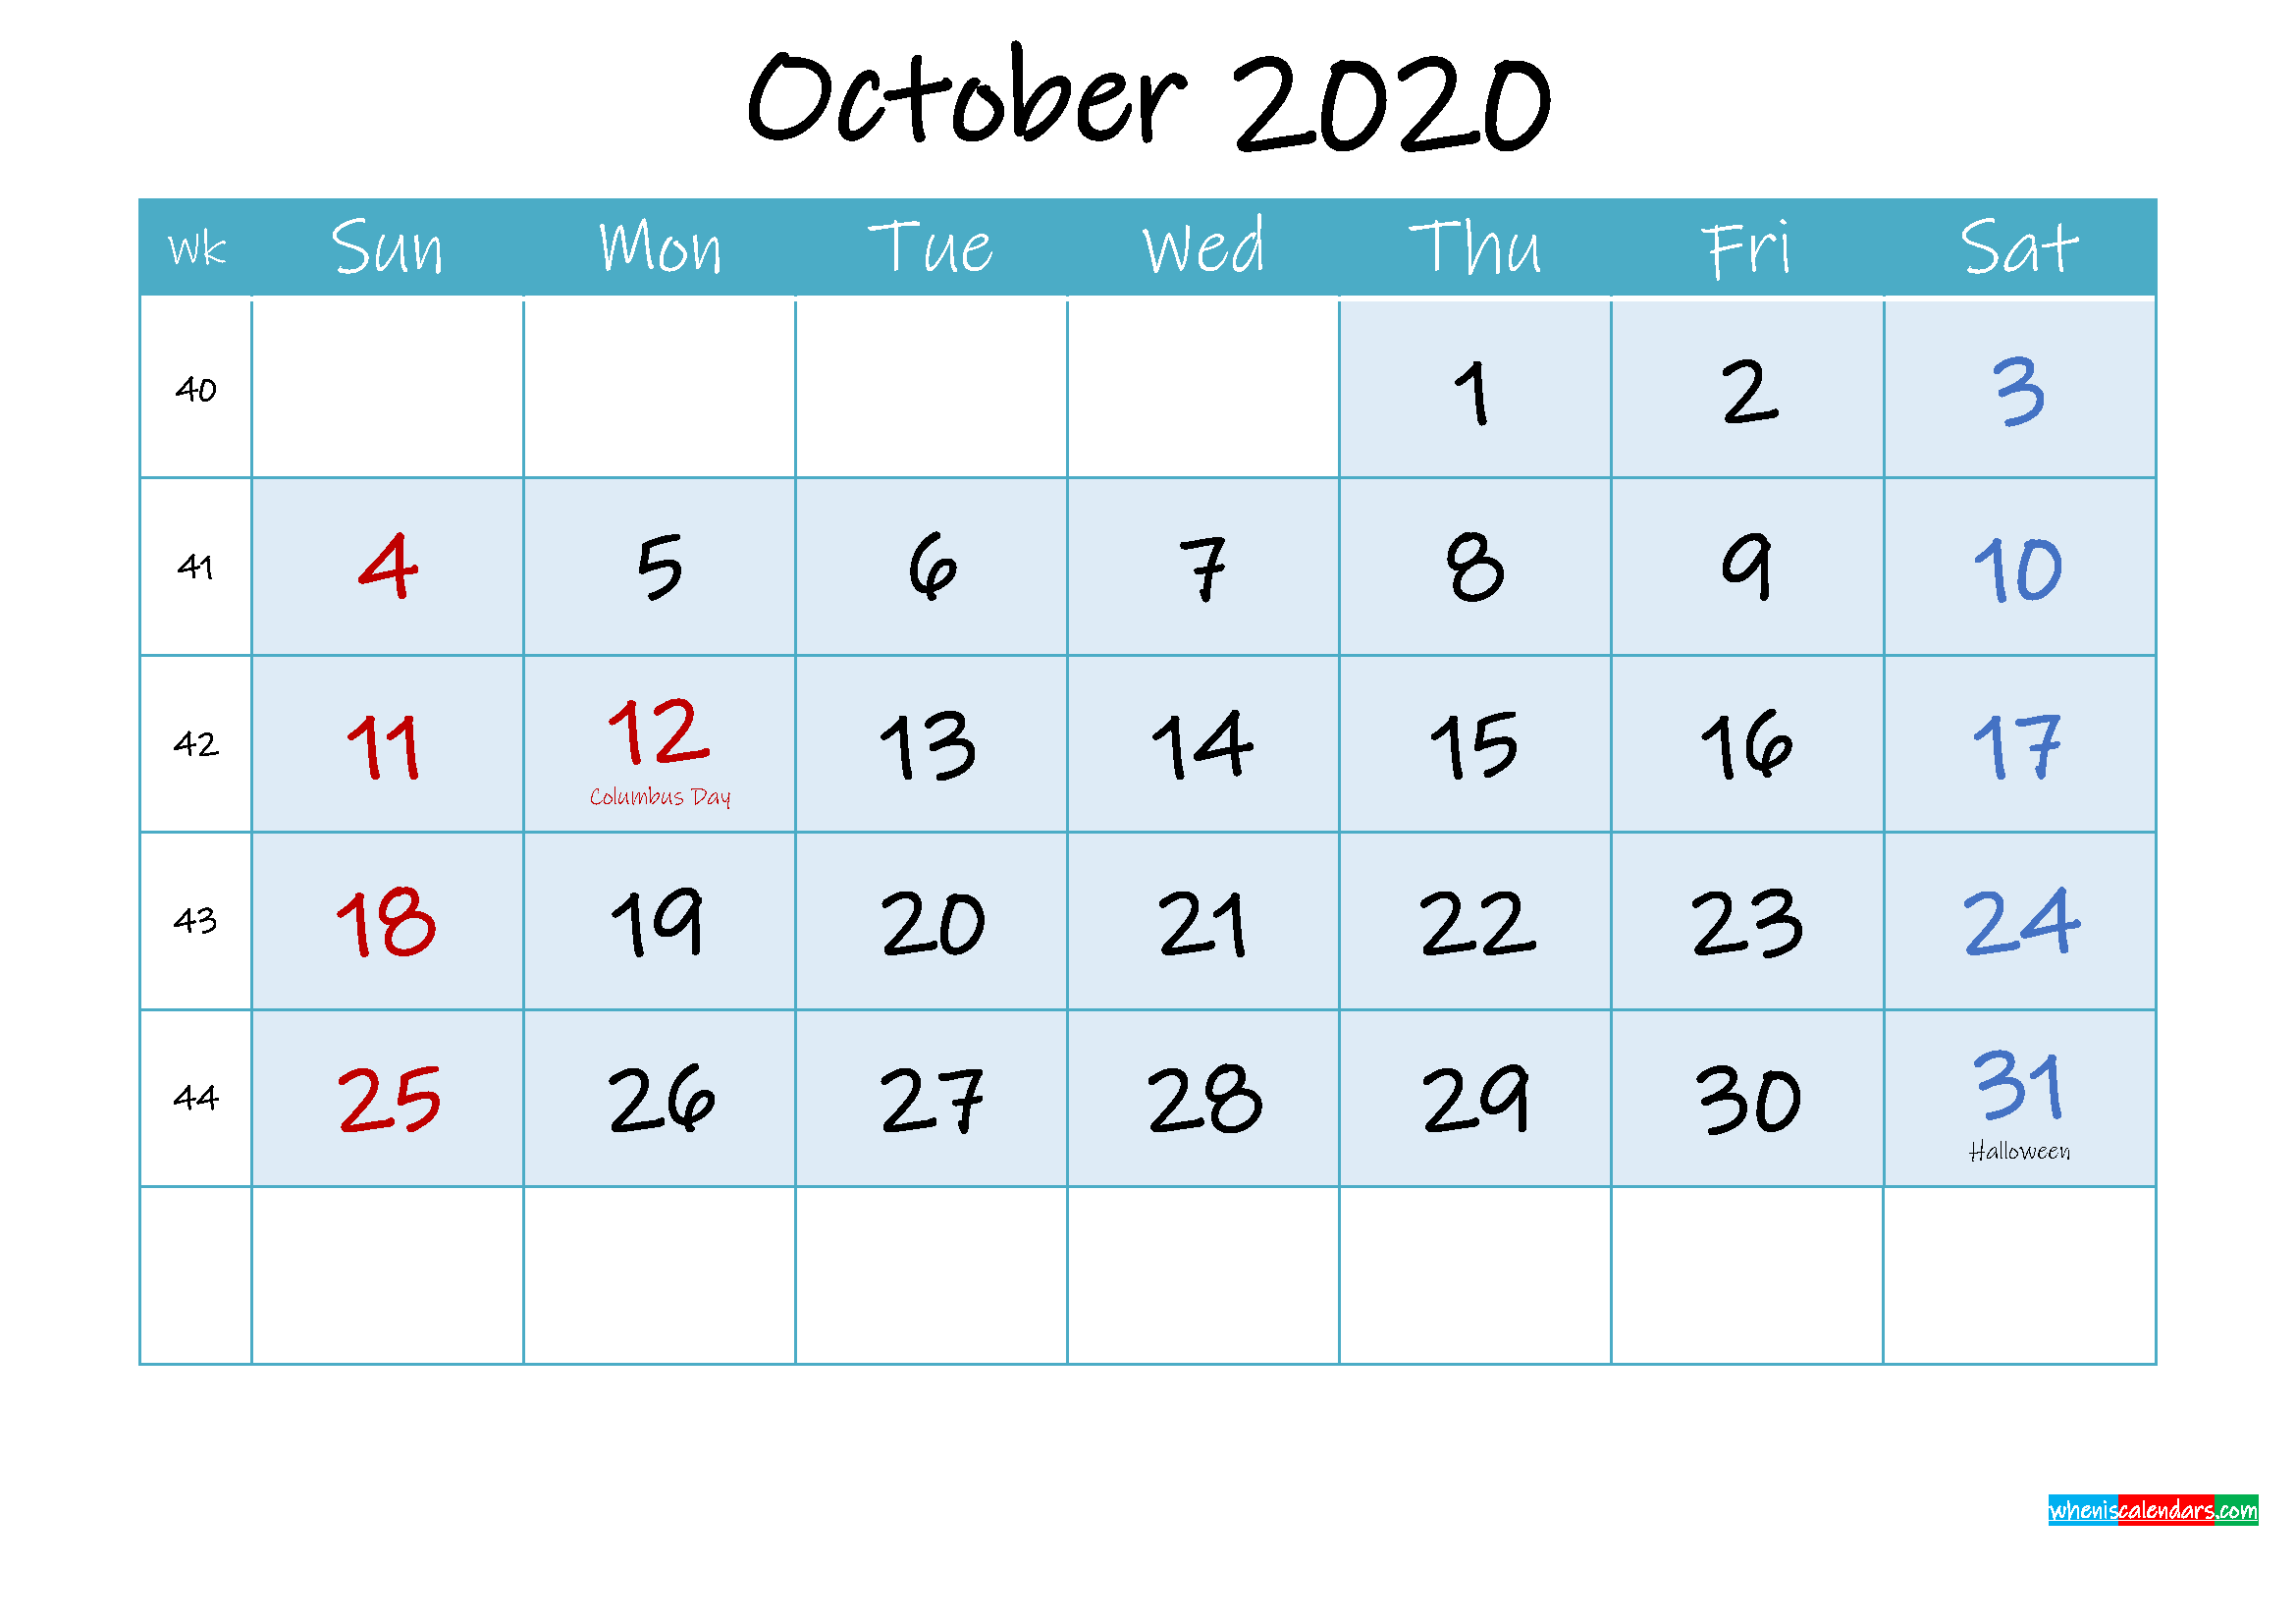 October 2020 Free Printable Calendar with Holidays